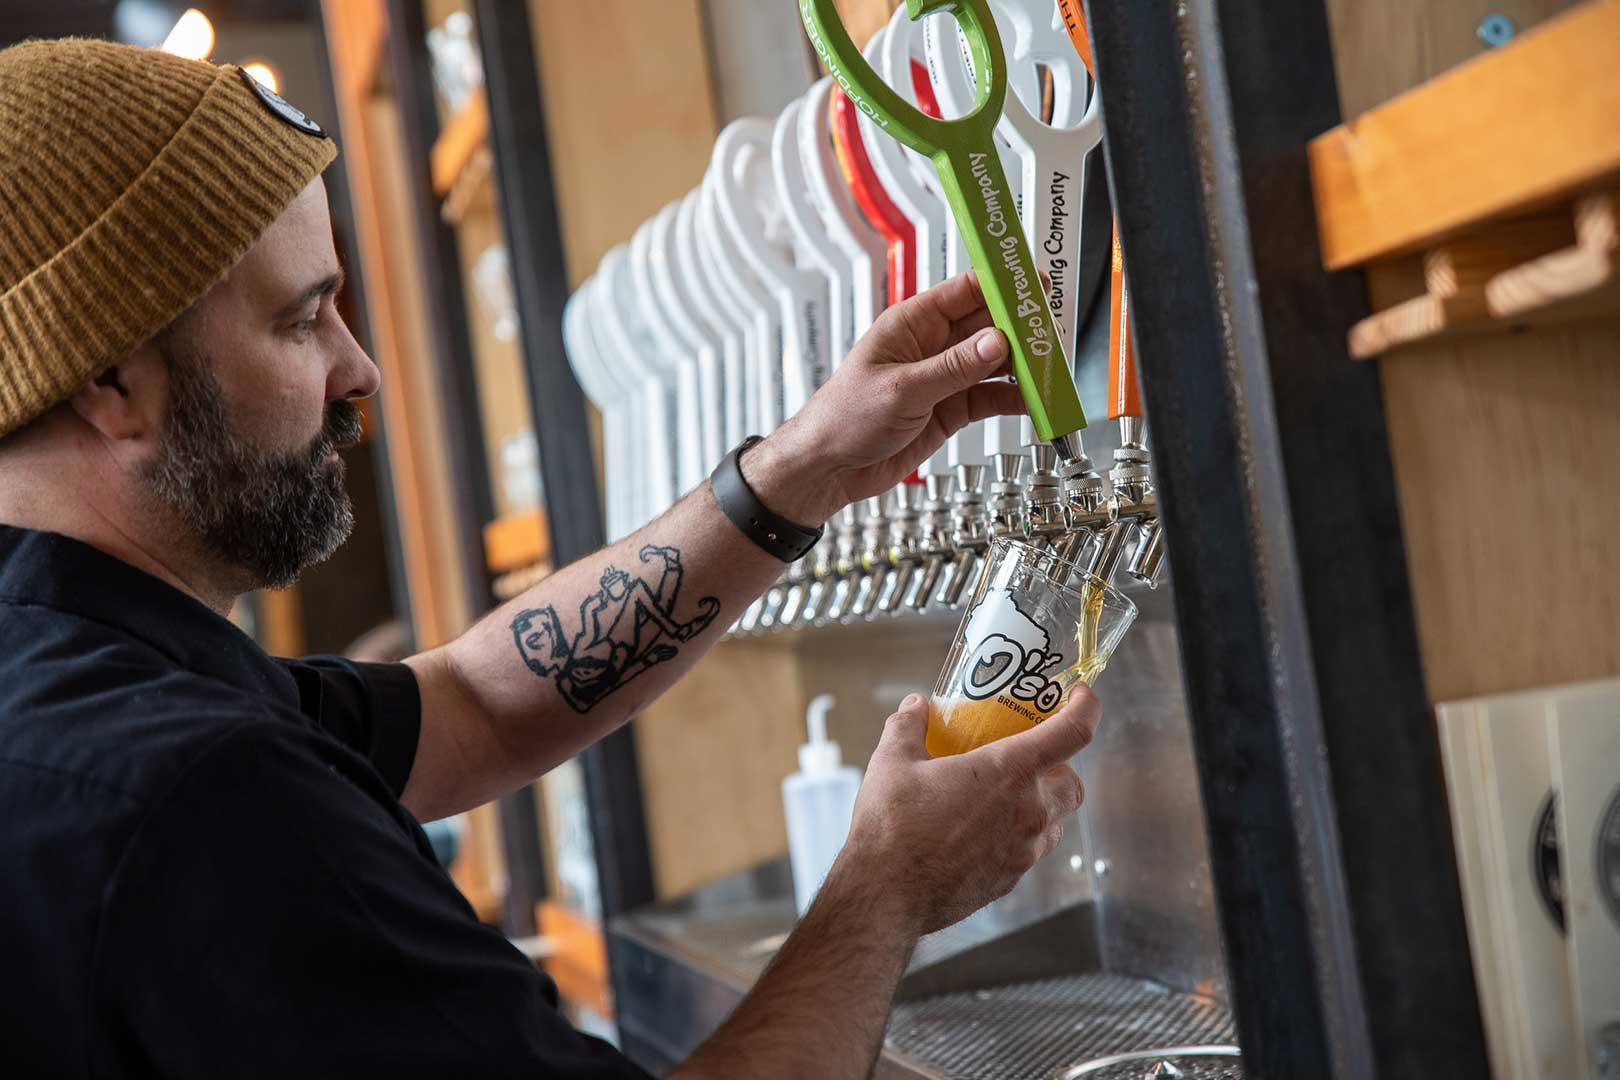 Chad Kersey pours beer at Madhouse